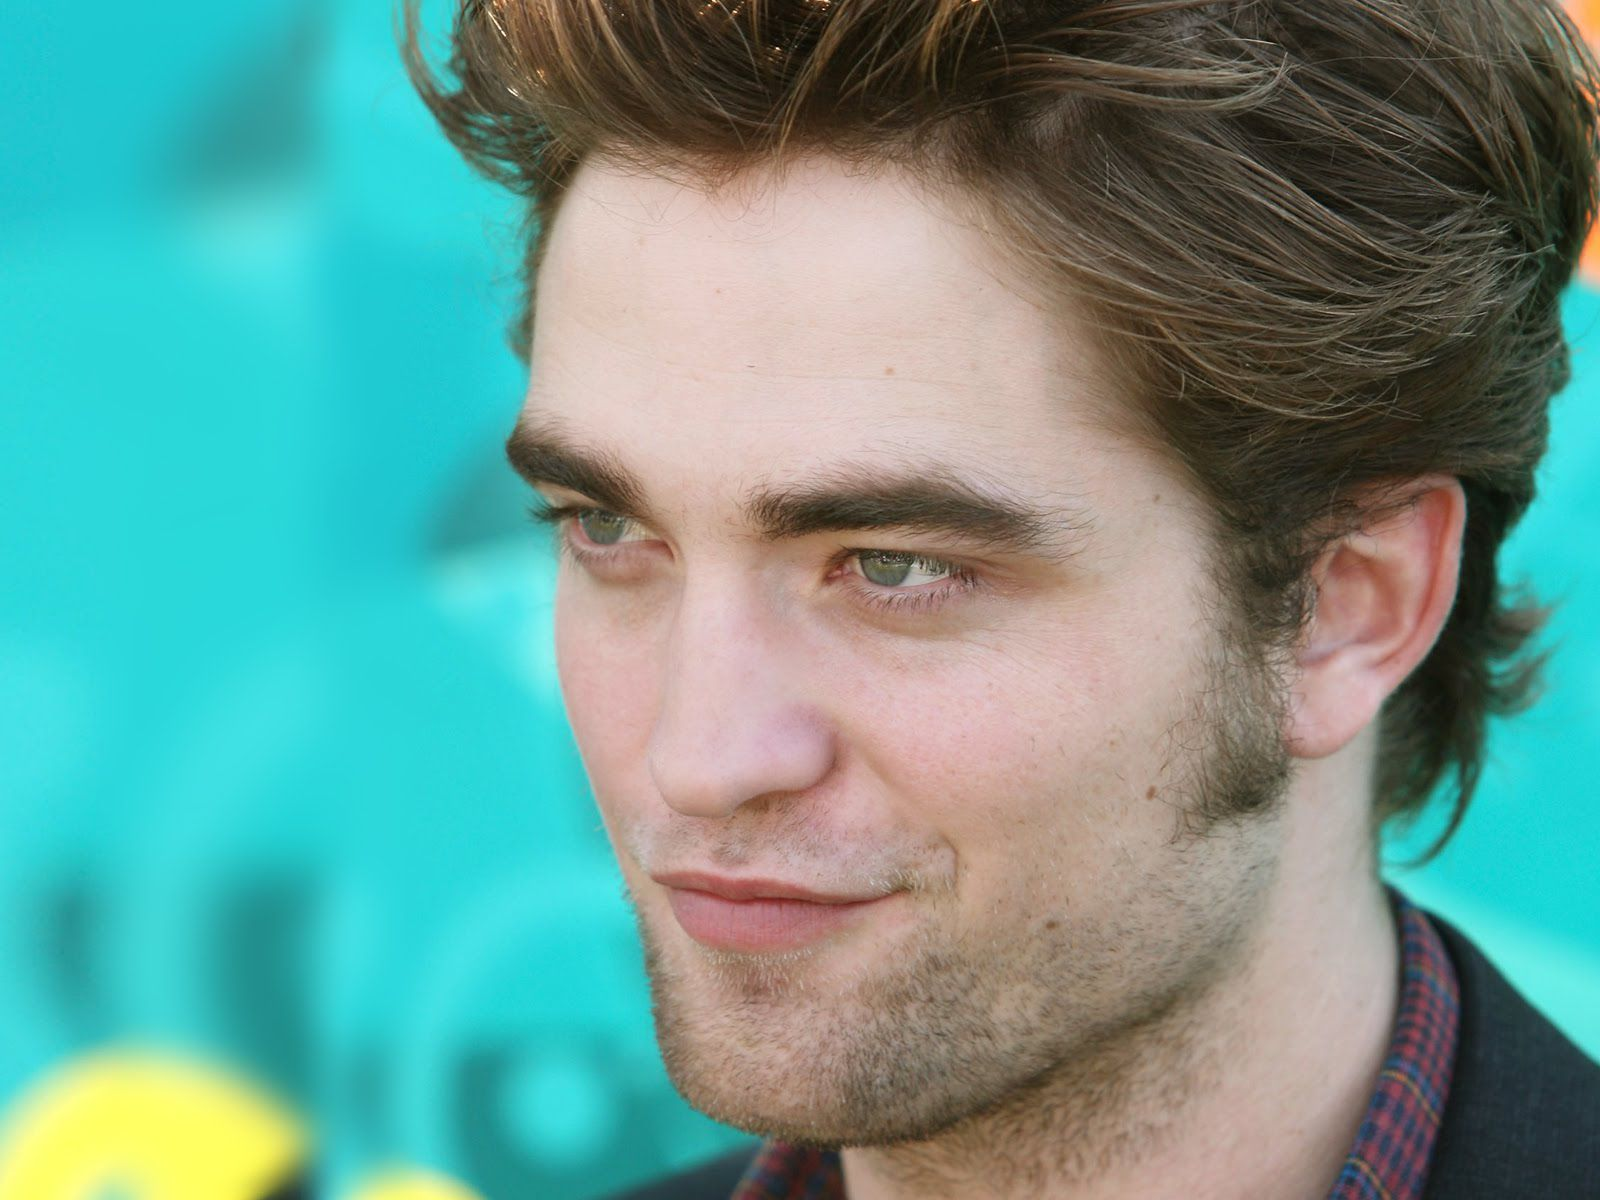 Robert Pattinson Face Wallpaper Pictures 57743 1600x1200px